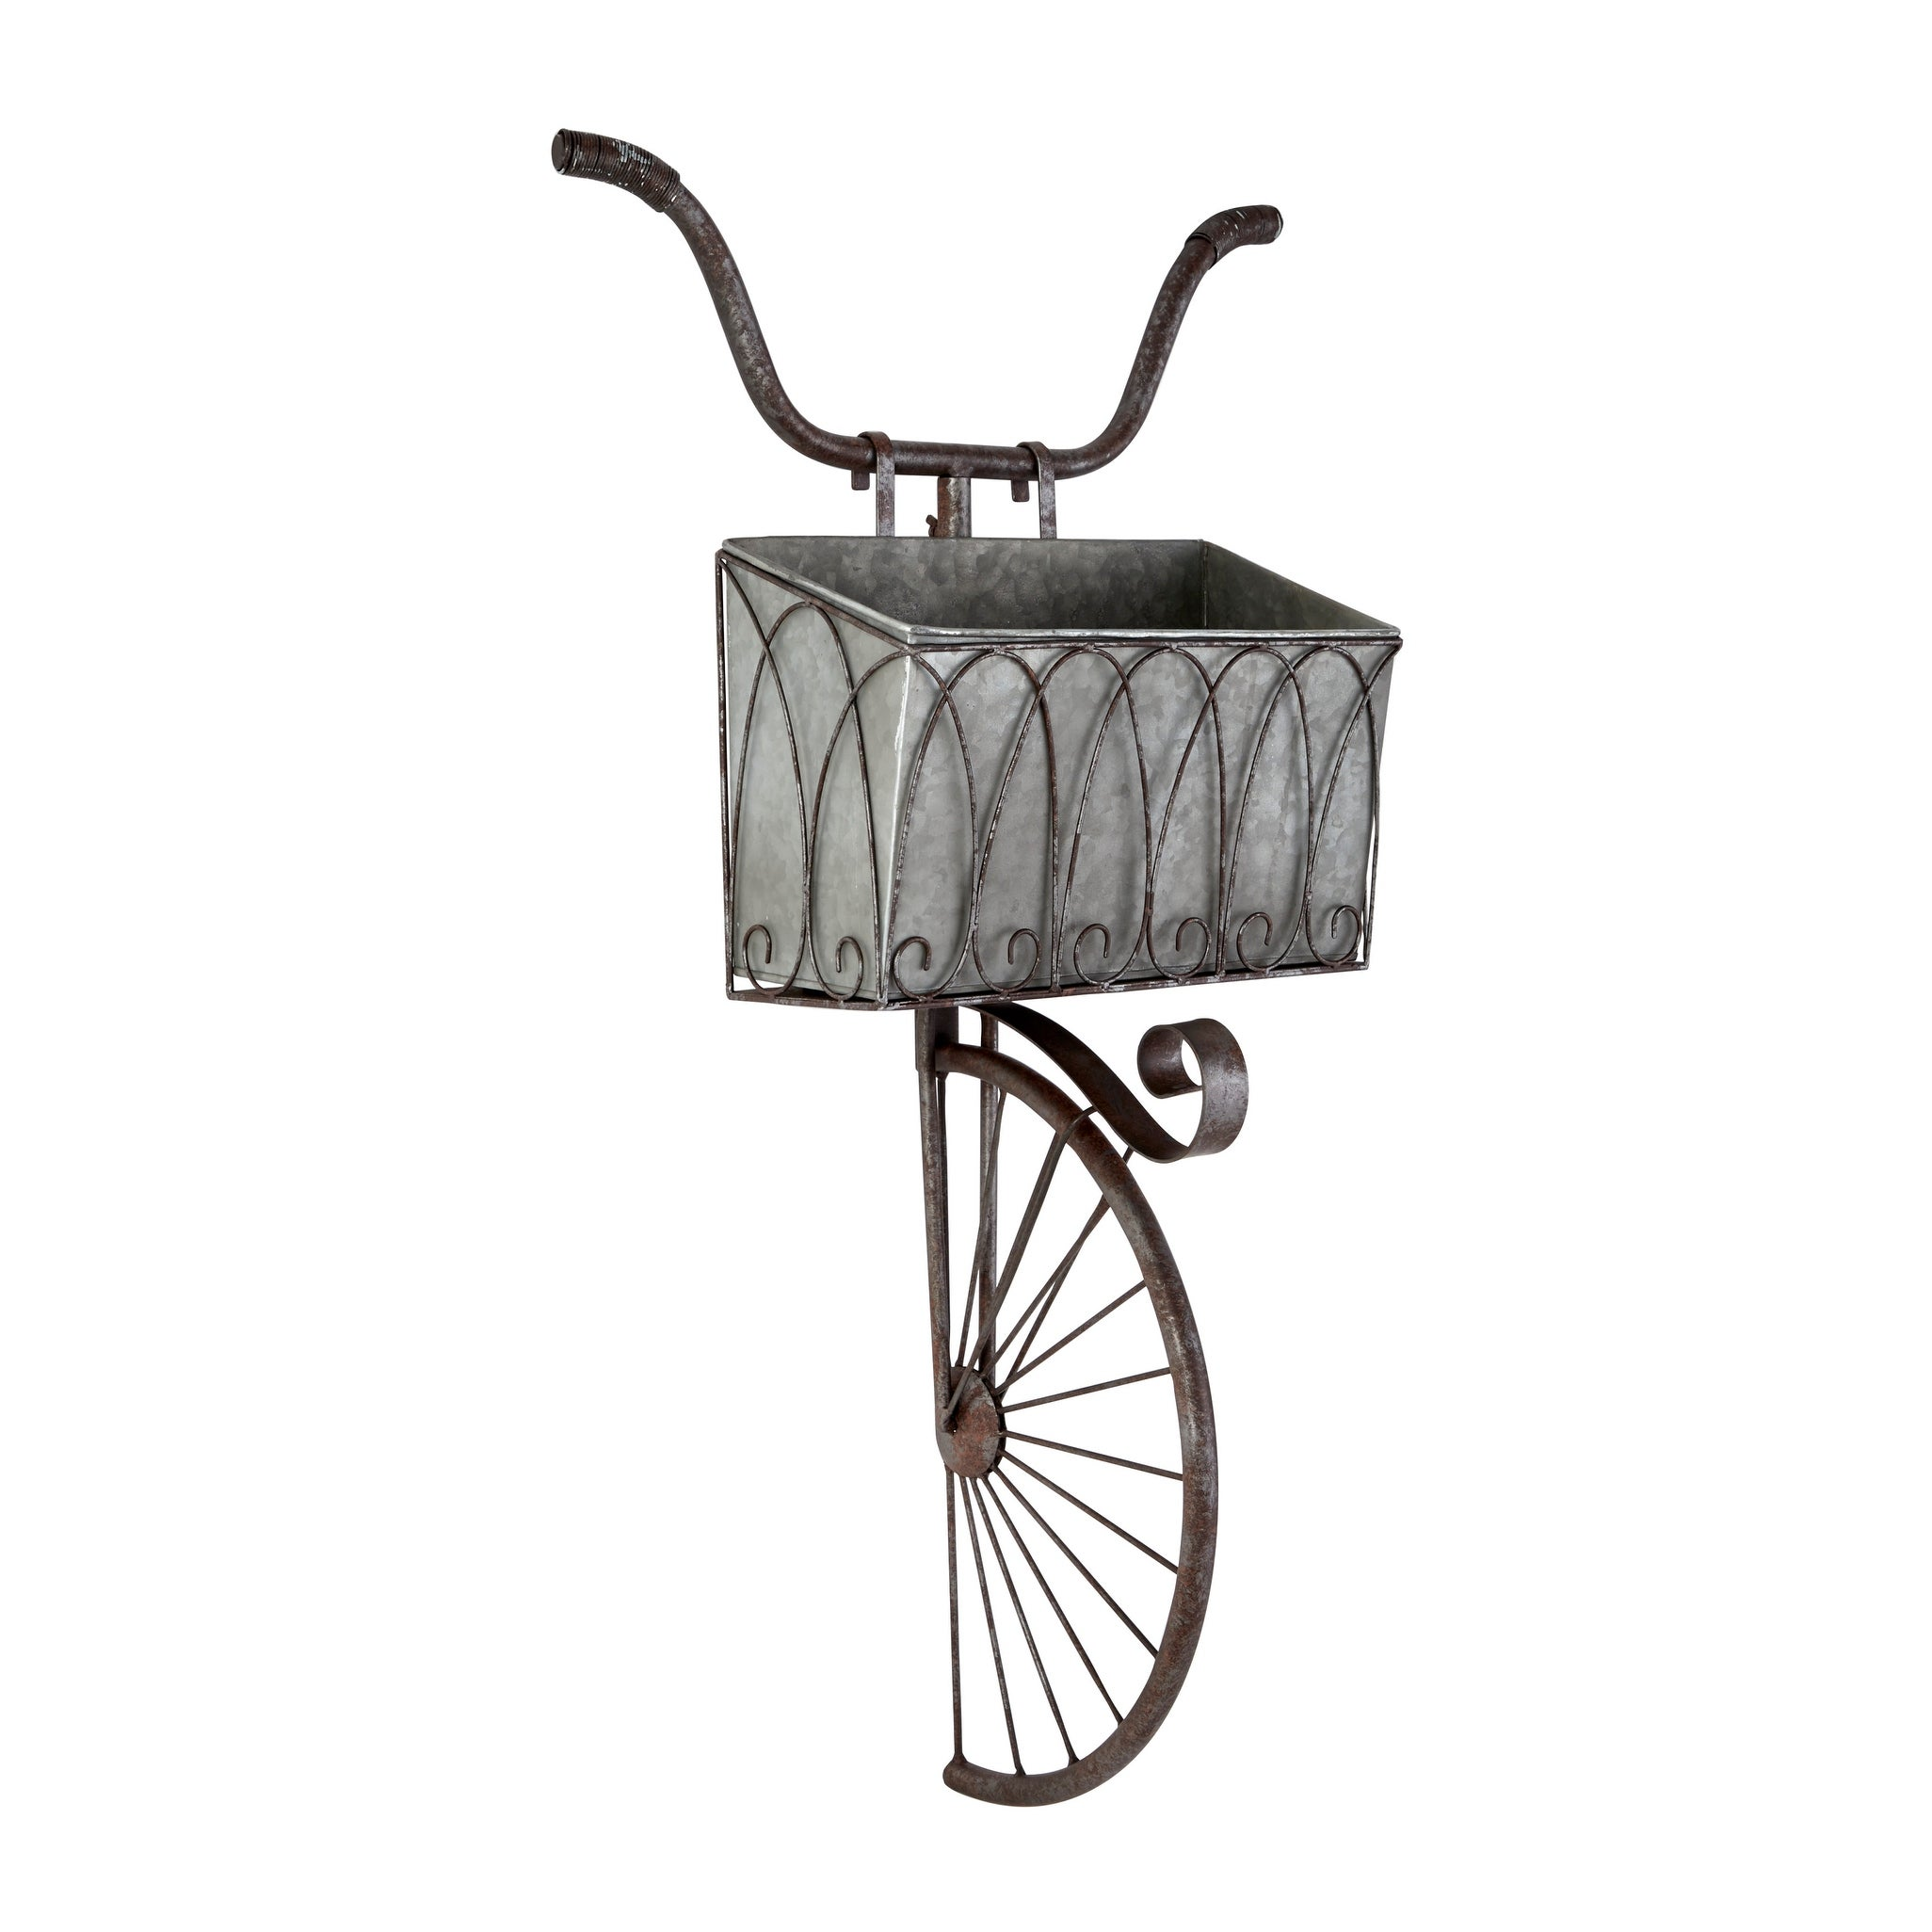 Shop Large Vintage Style Galvanized Steel Wall Planter 23 X 35 20 X 9 X 38 On Sale Overstock 28654915